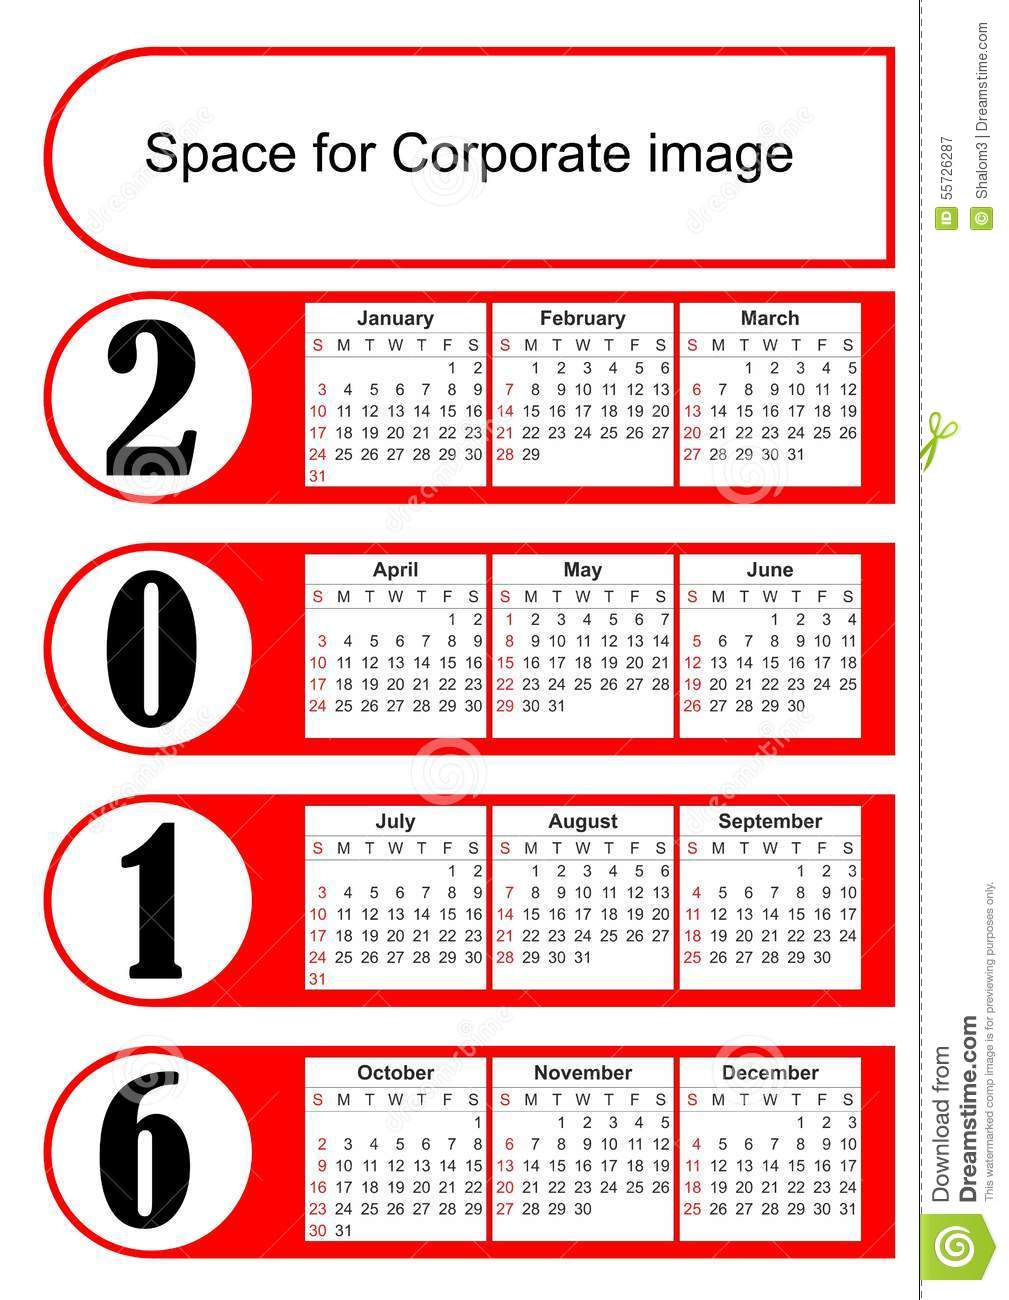 Corporate Calendar Design 2016 : Vertical calendar with simply red graphic design eps